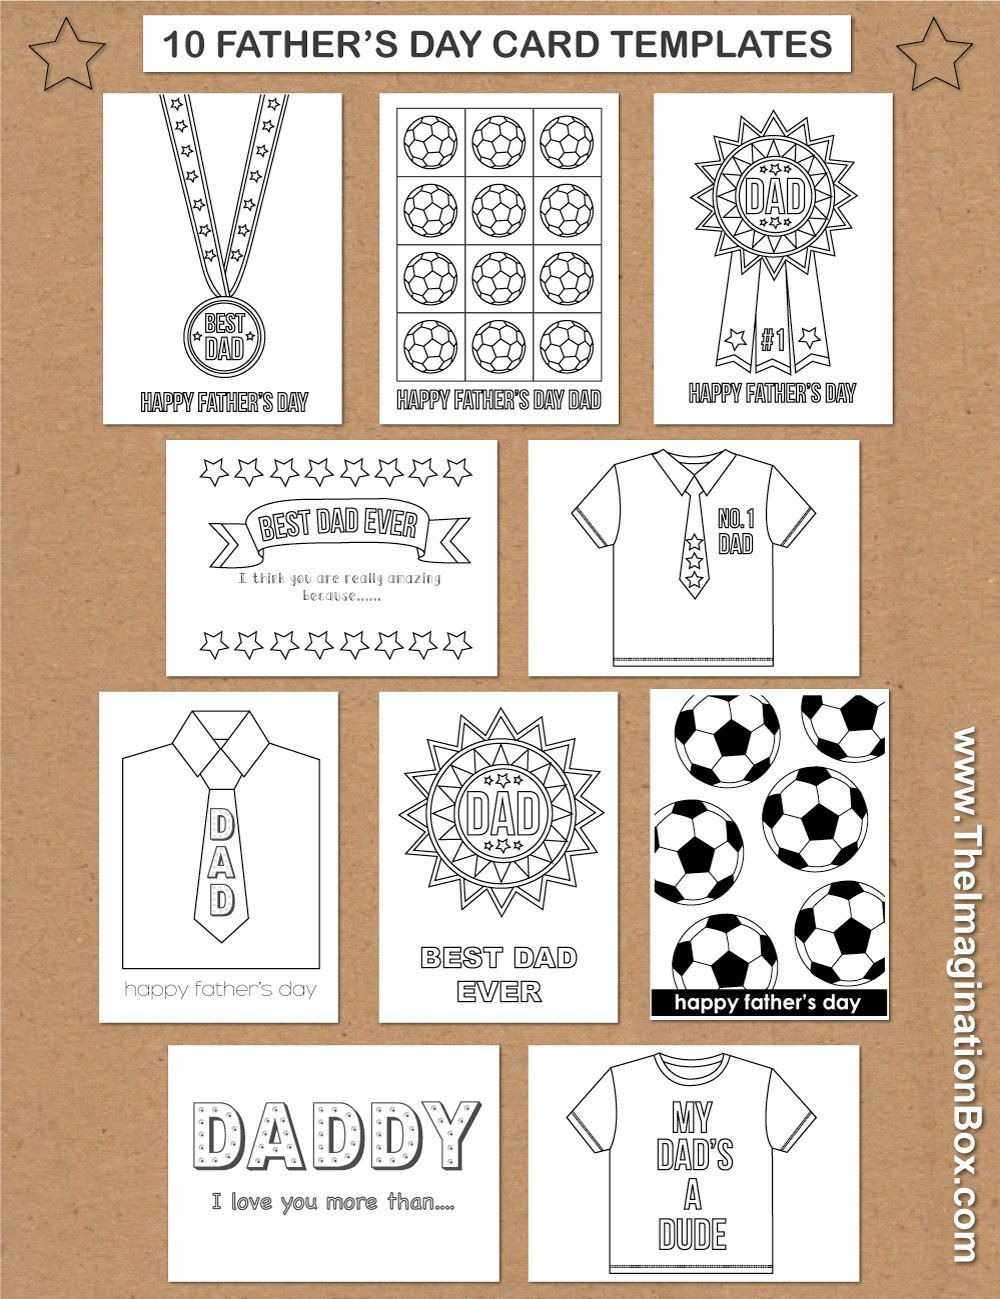 10 Father 39 S Day Card Templates For Kids To Print And Decorate Instant Pdf Download Father 39 S Day Father S Day Card Template Creative Cards Fathers Day